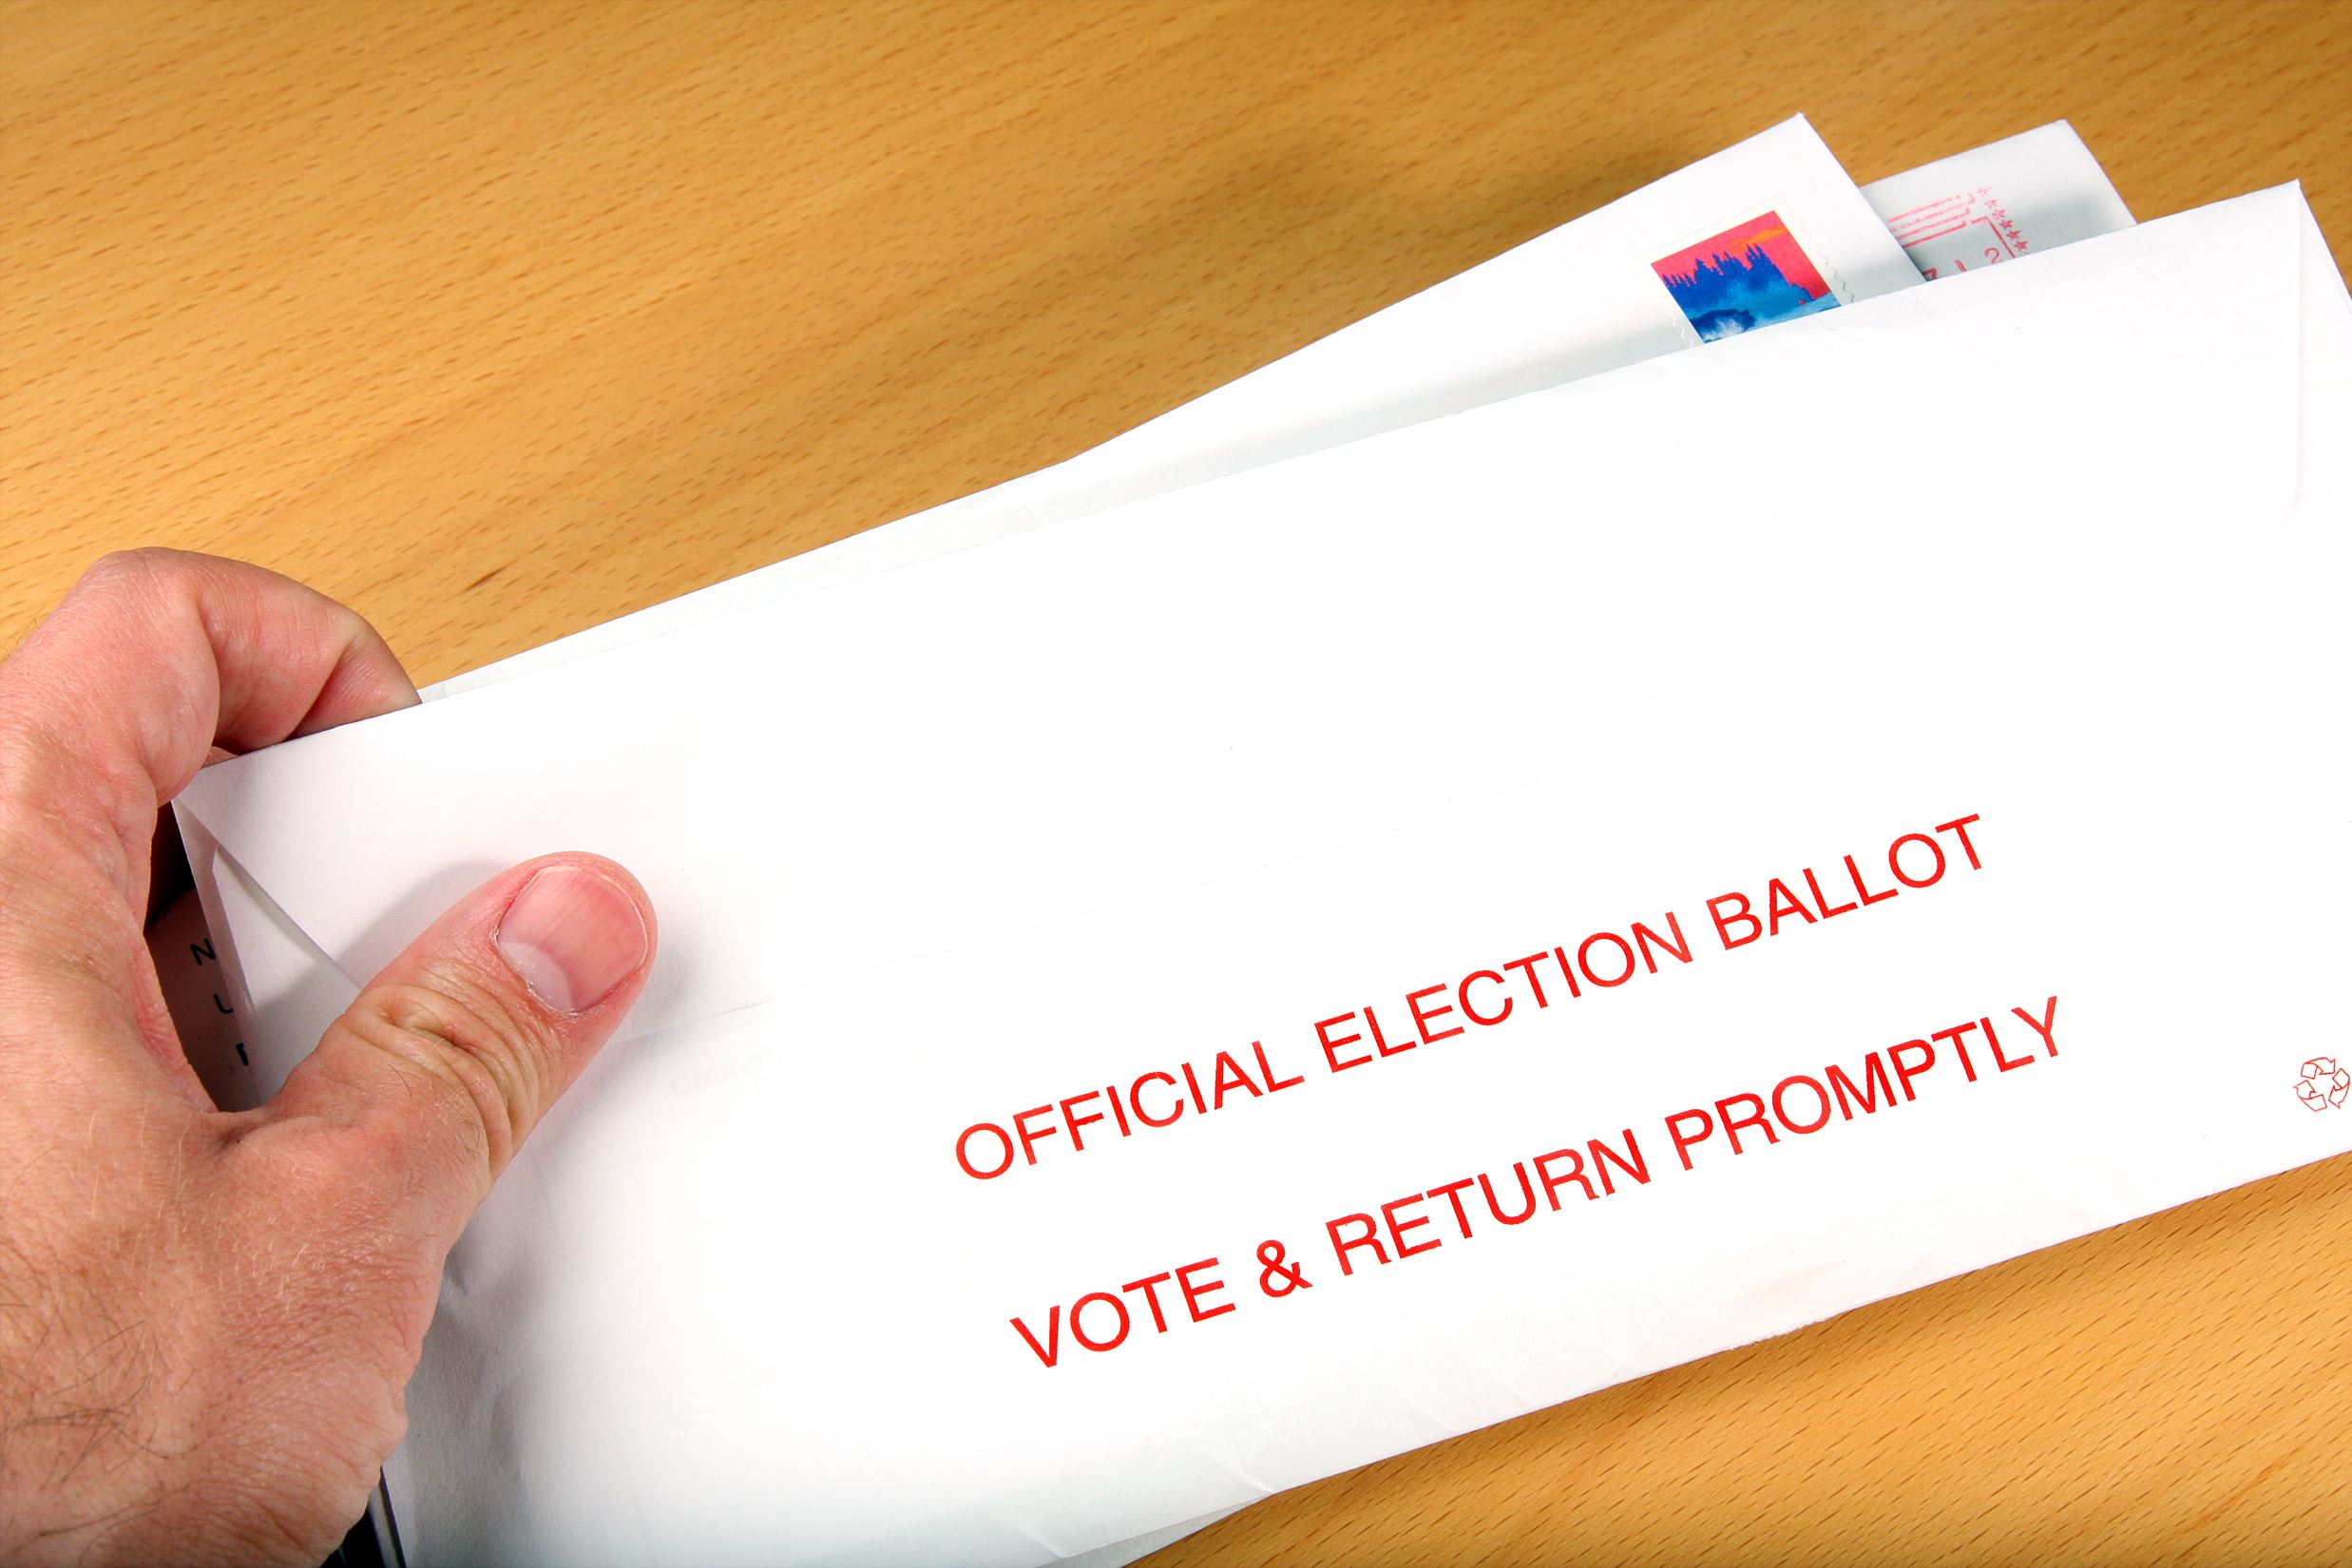 image of ballot in an envelope